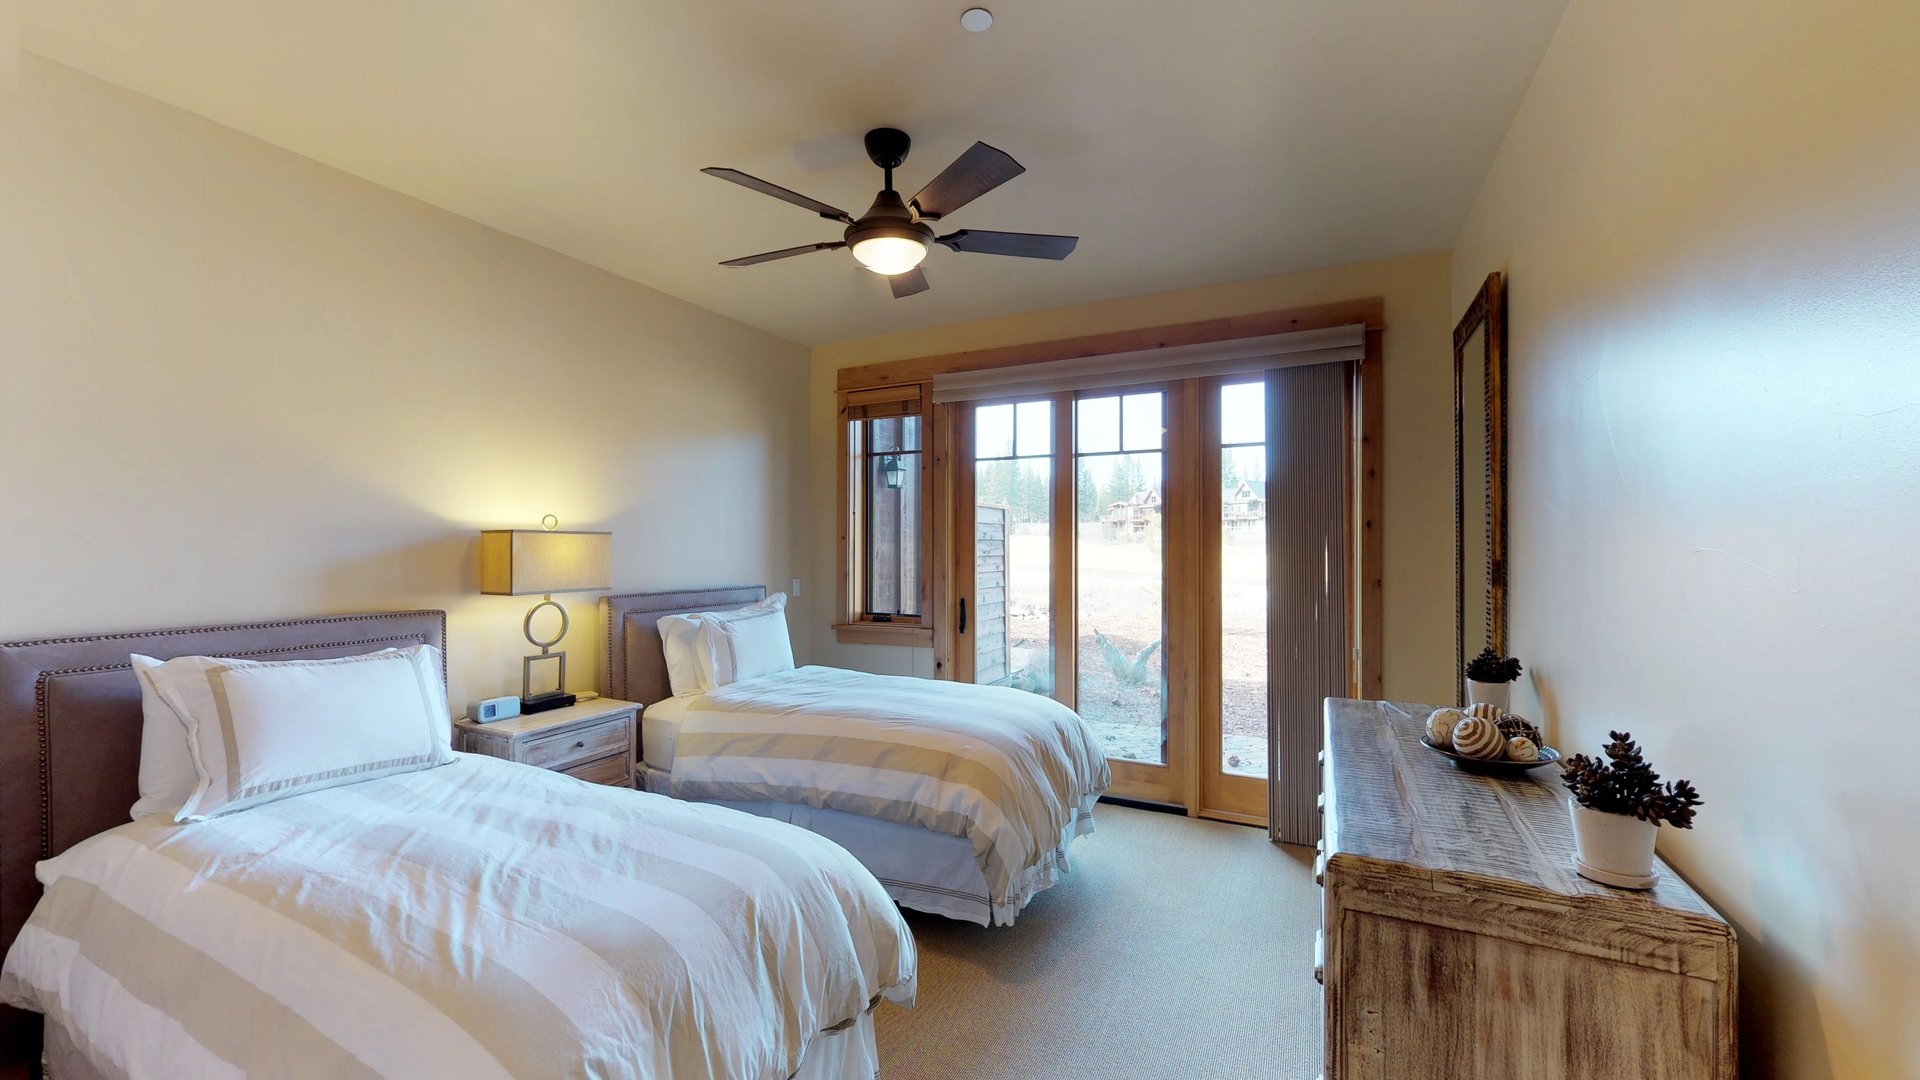 An Image of Two Beds and Dresser in Bedroom.